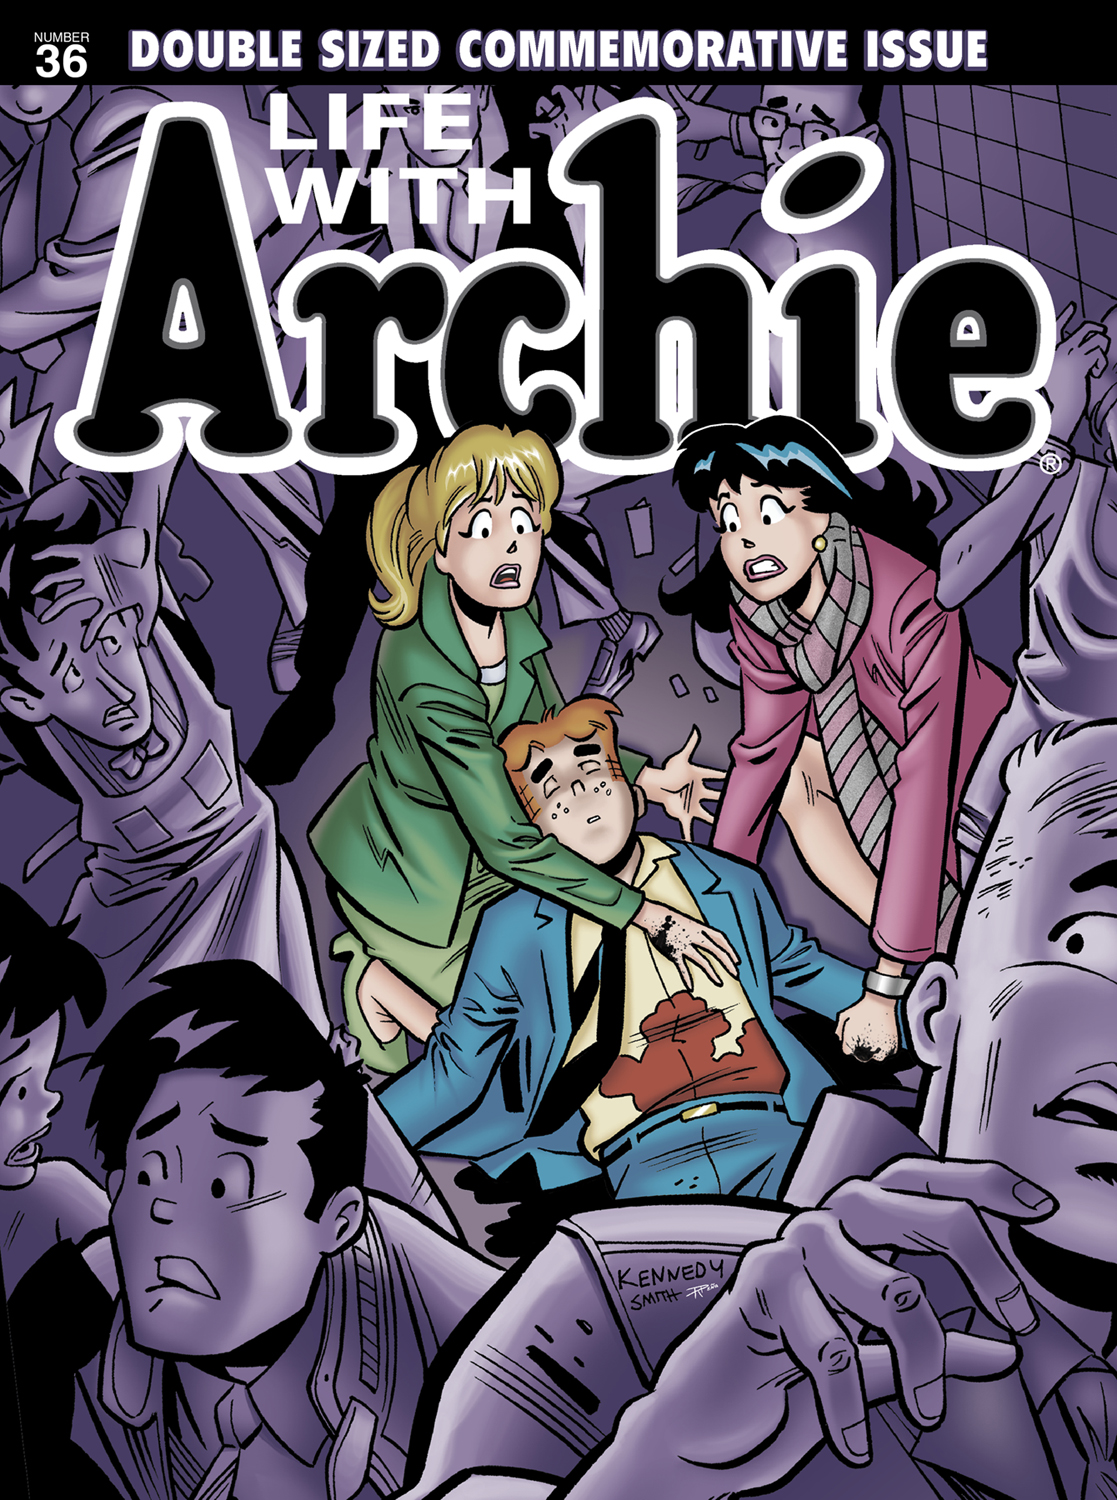 Archie comics archie comics sneak peek of the week major spoilers - Lifewitharchie_36_magazine In Addition To The Acclaimed Regular Life With Archie Creative Team The Two Comic